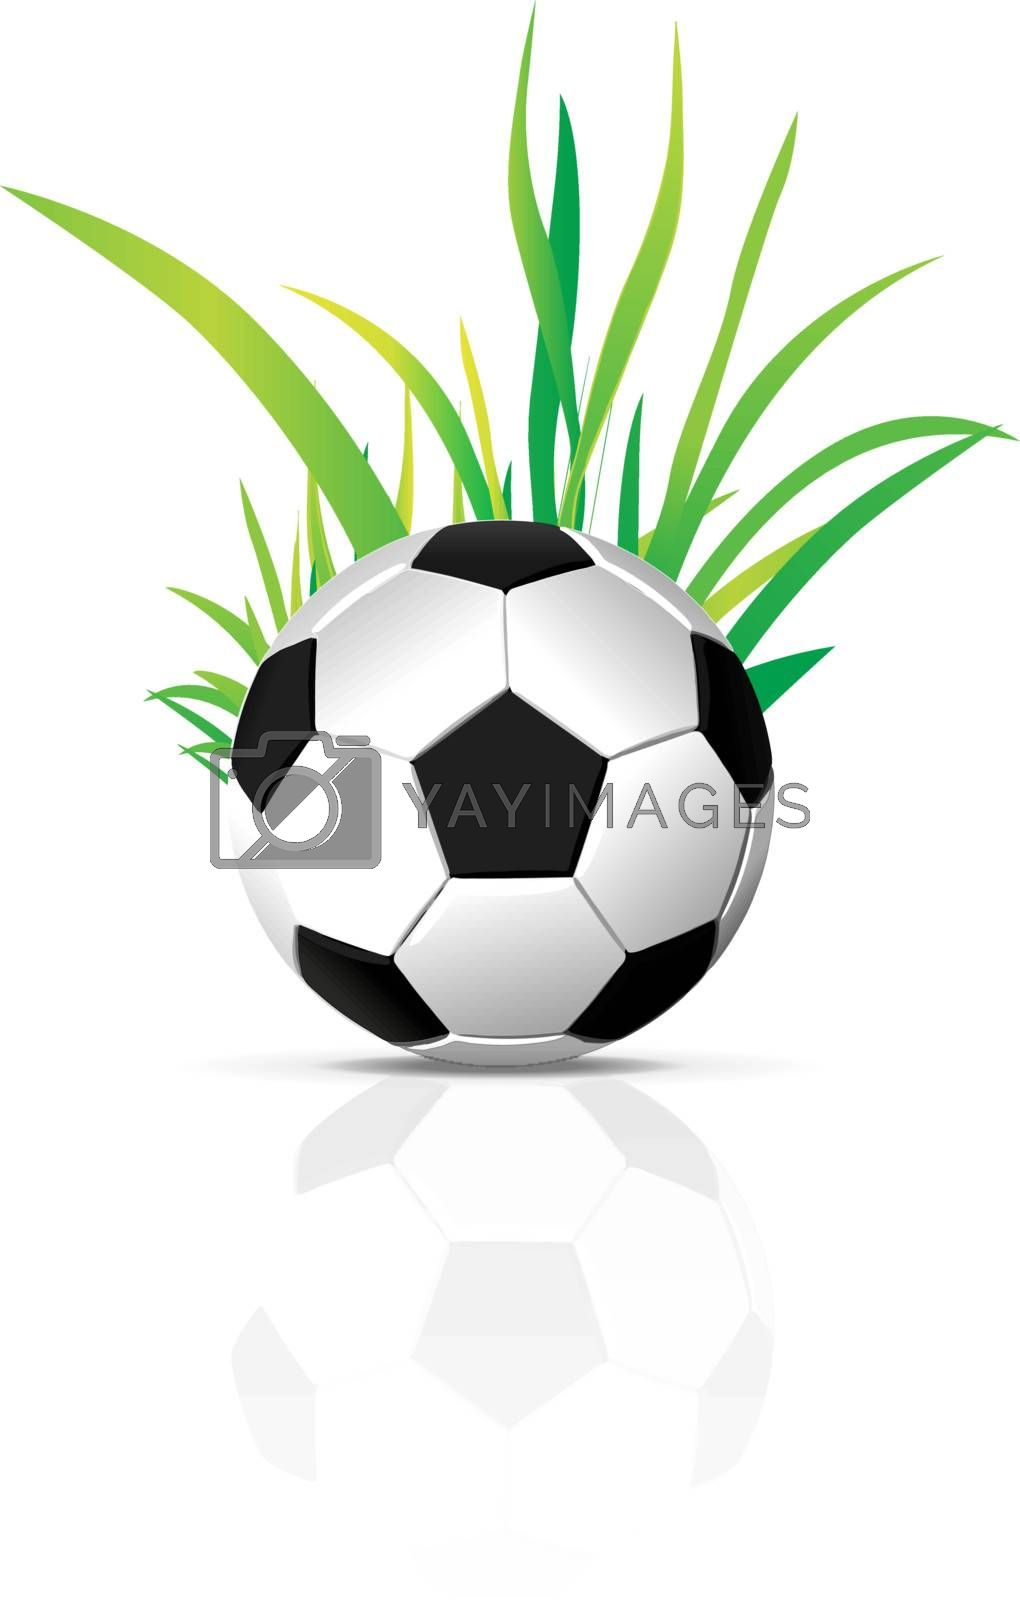 vector soccer ball with grass element isolated on white background